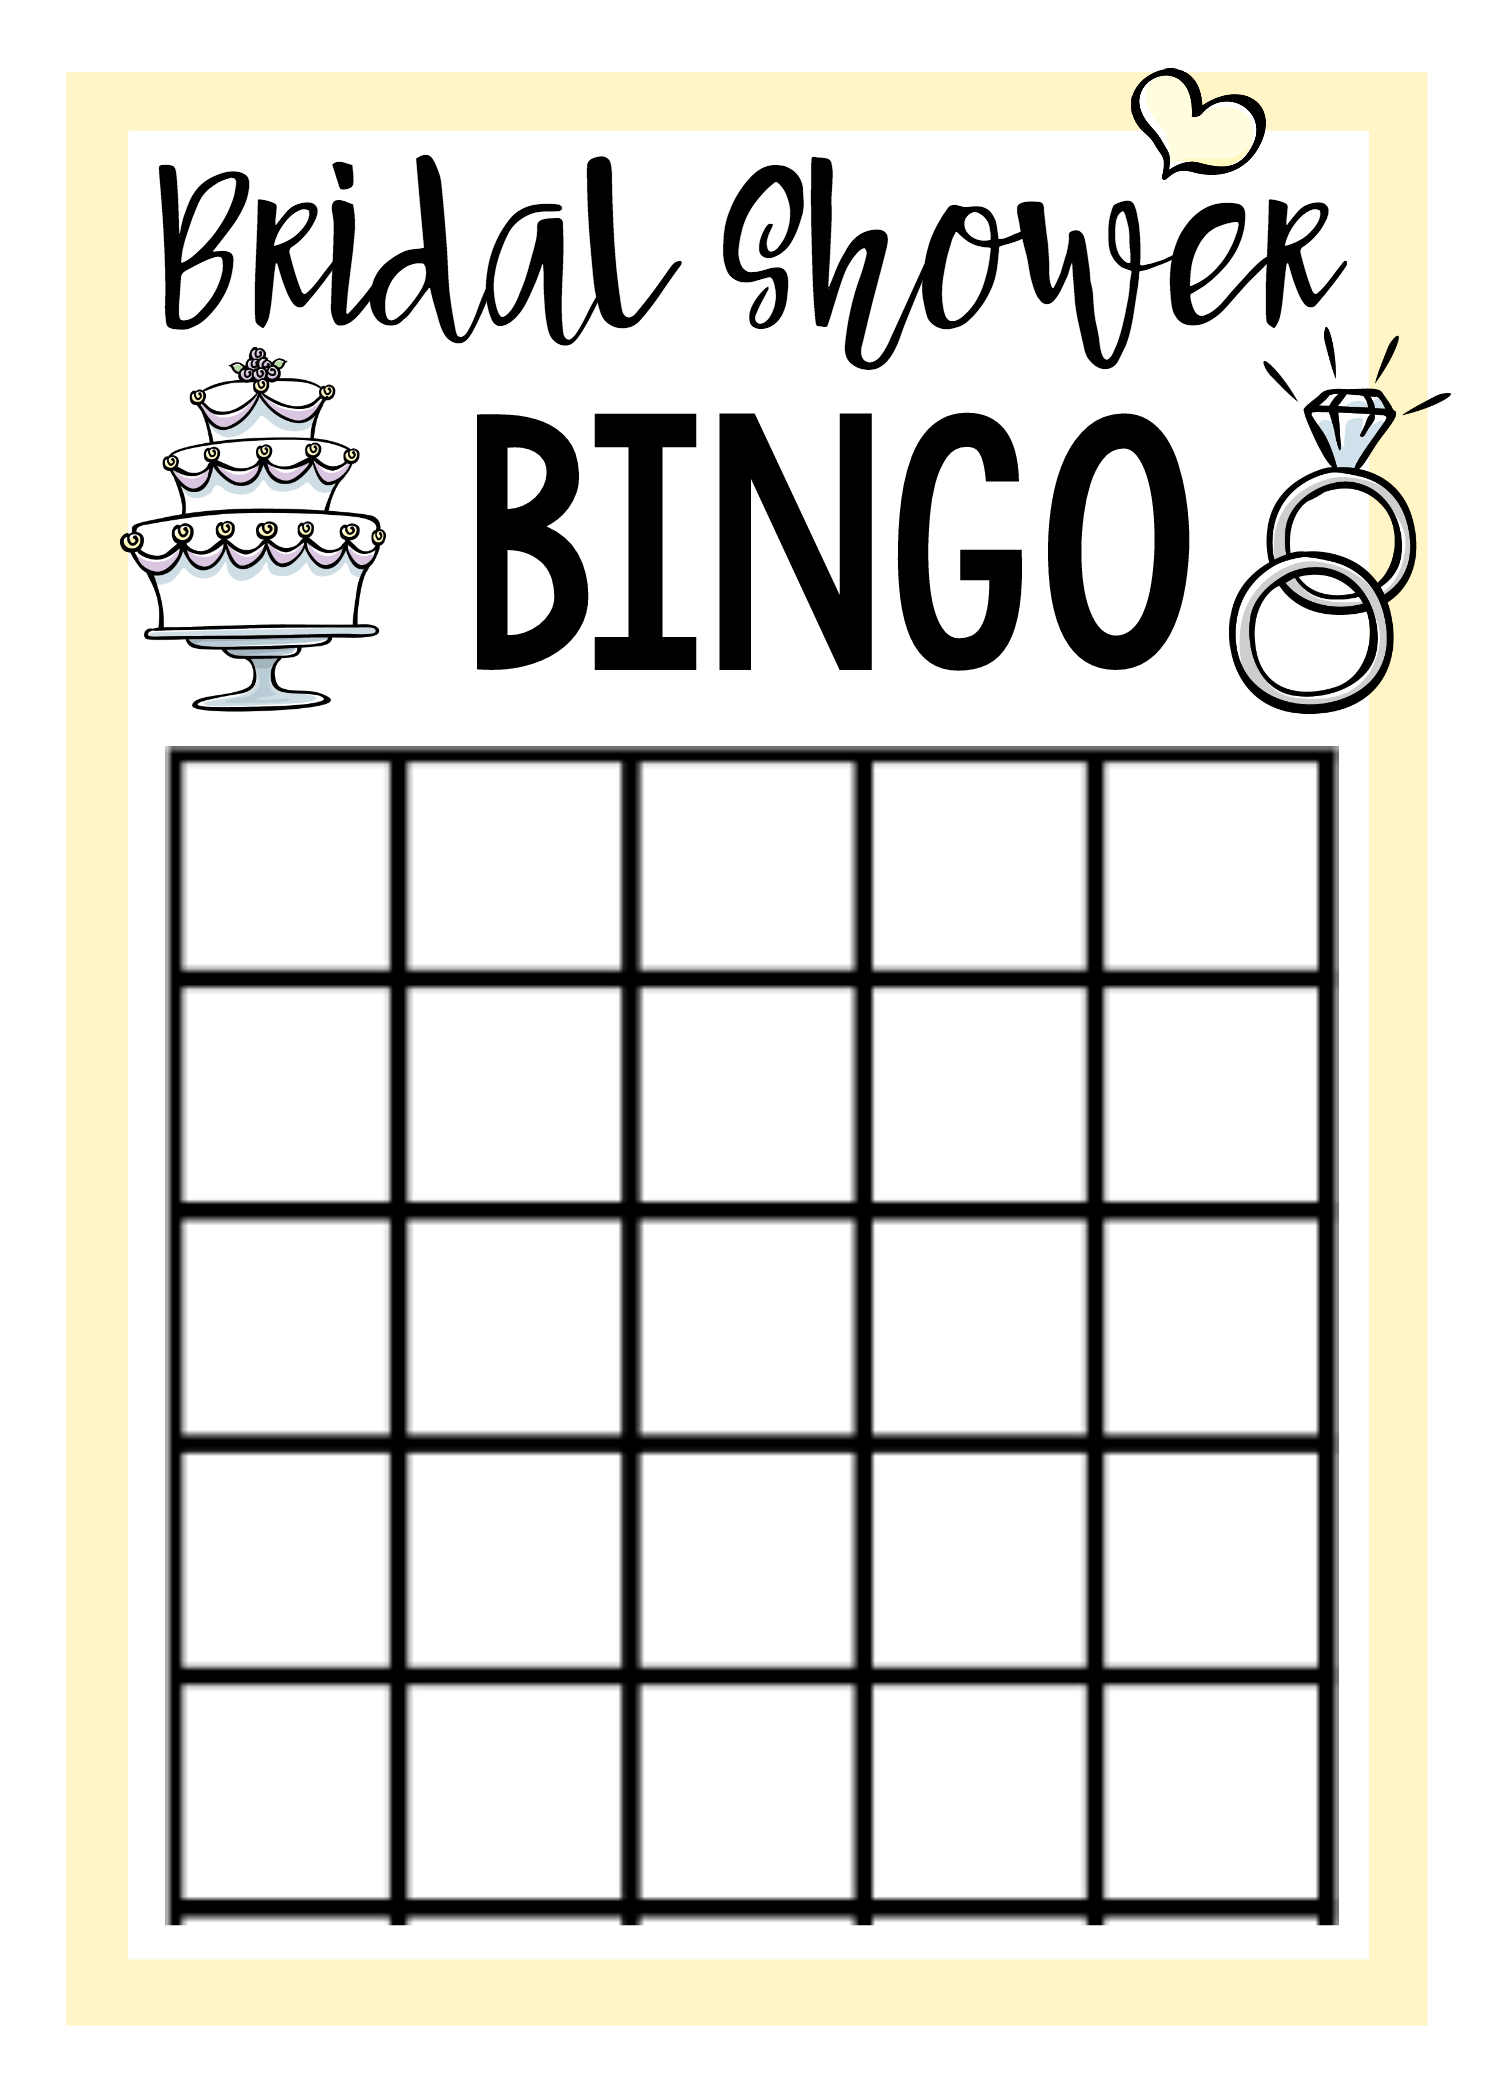 photo about Bridal Shower Bingo Free Printable titled Cost-free Printable Bridal Shower Game titles Enjoyment-Squared